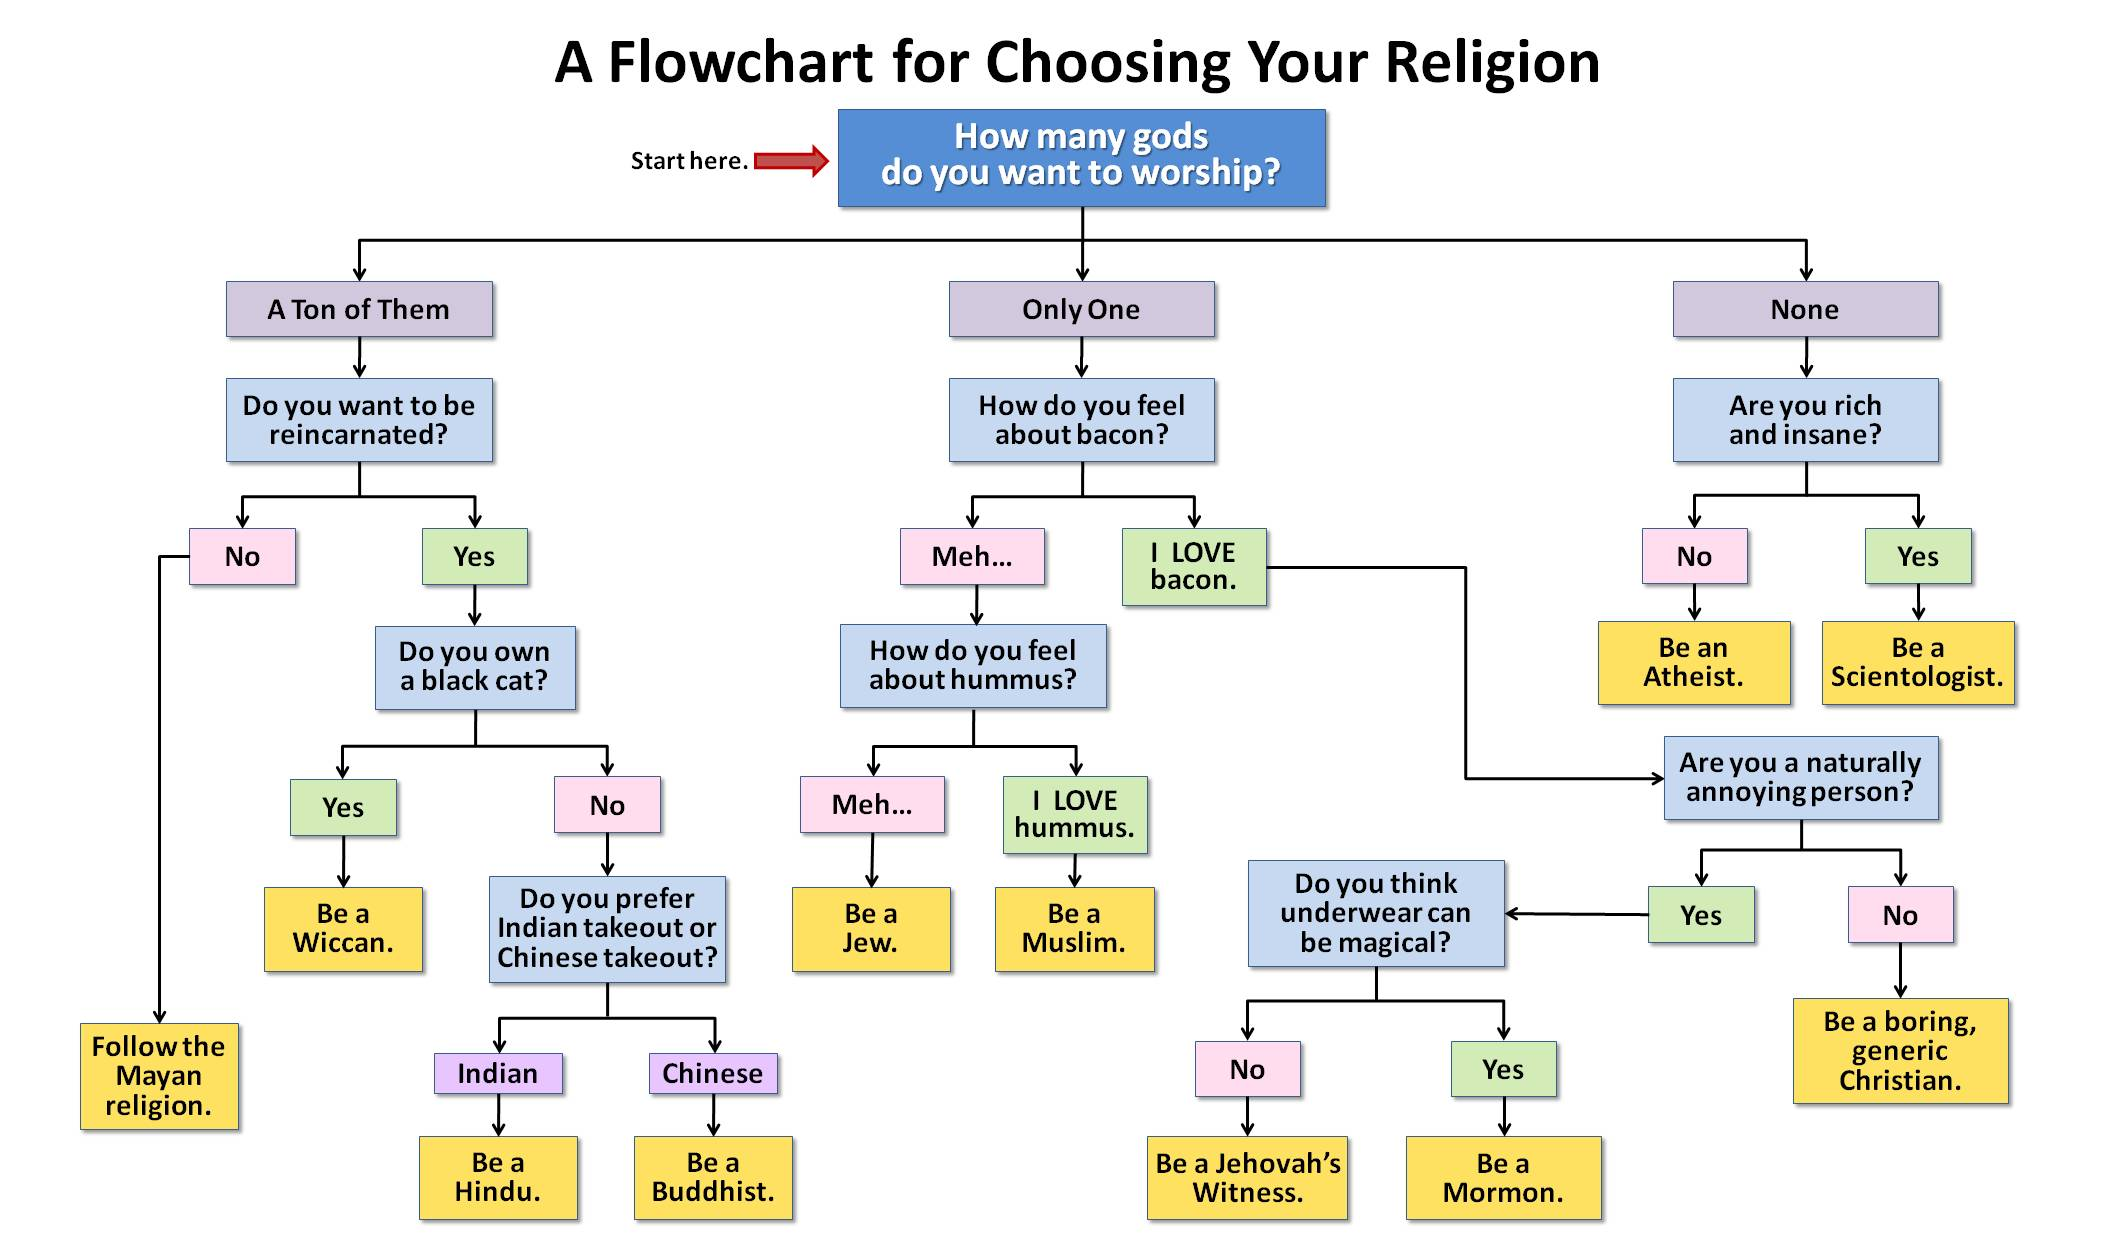 Image 273960 flowcharts flowchart parodies know your meme a flowchart for choosing your religion how many gods do you want to worship start nvjuhfo Image collections